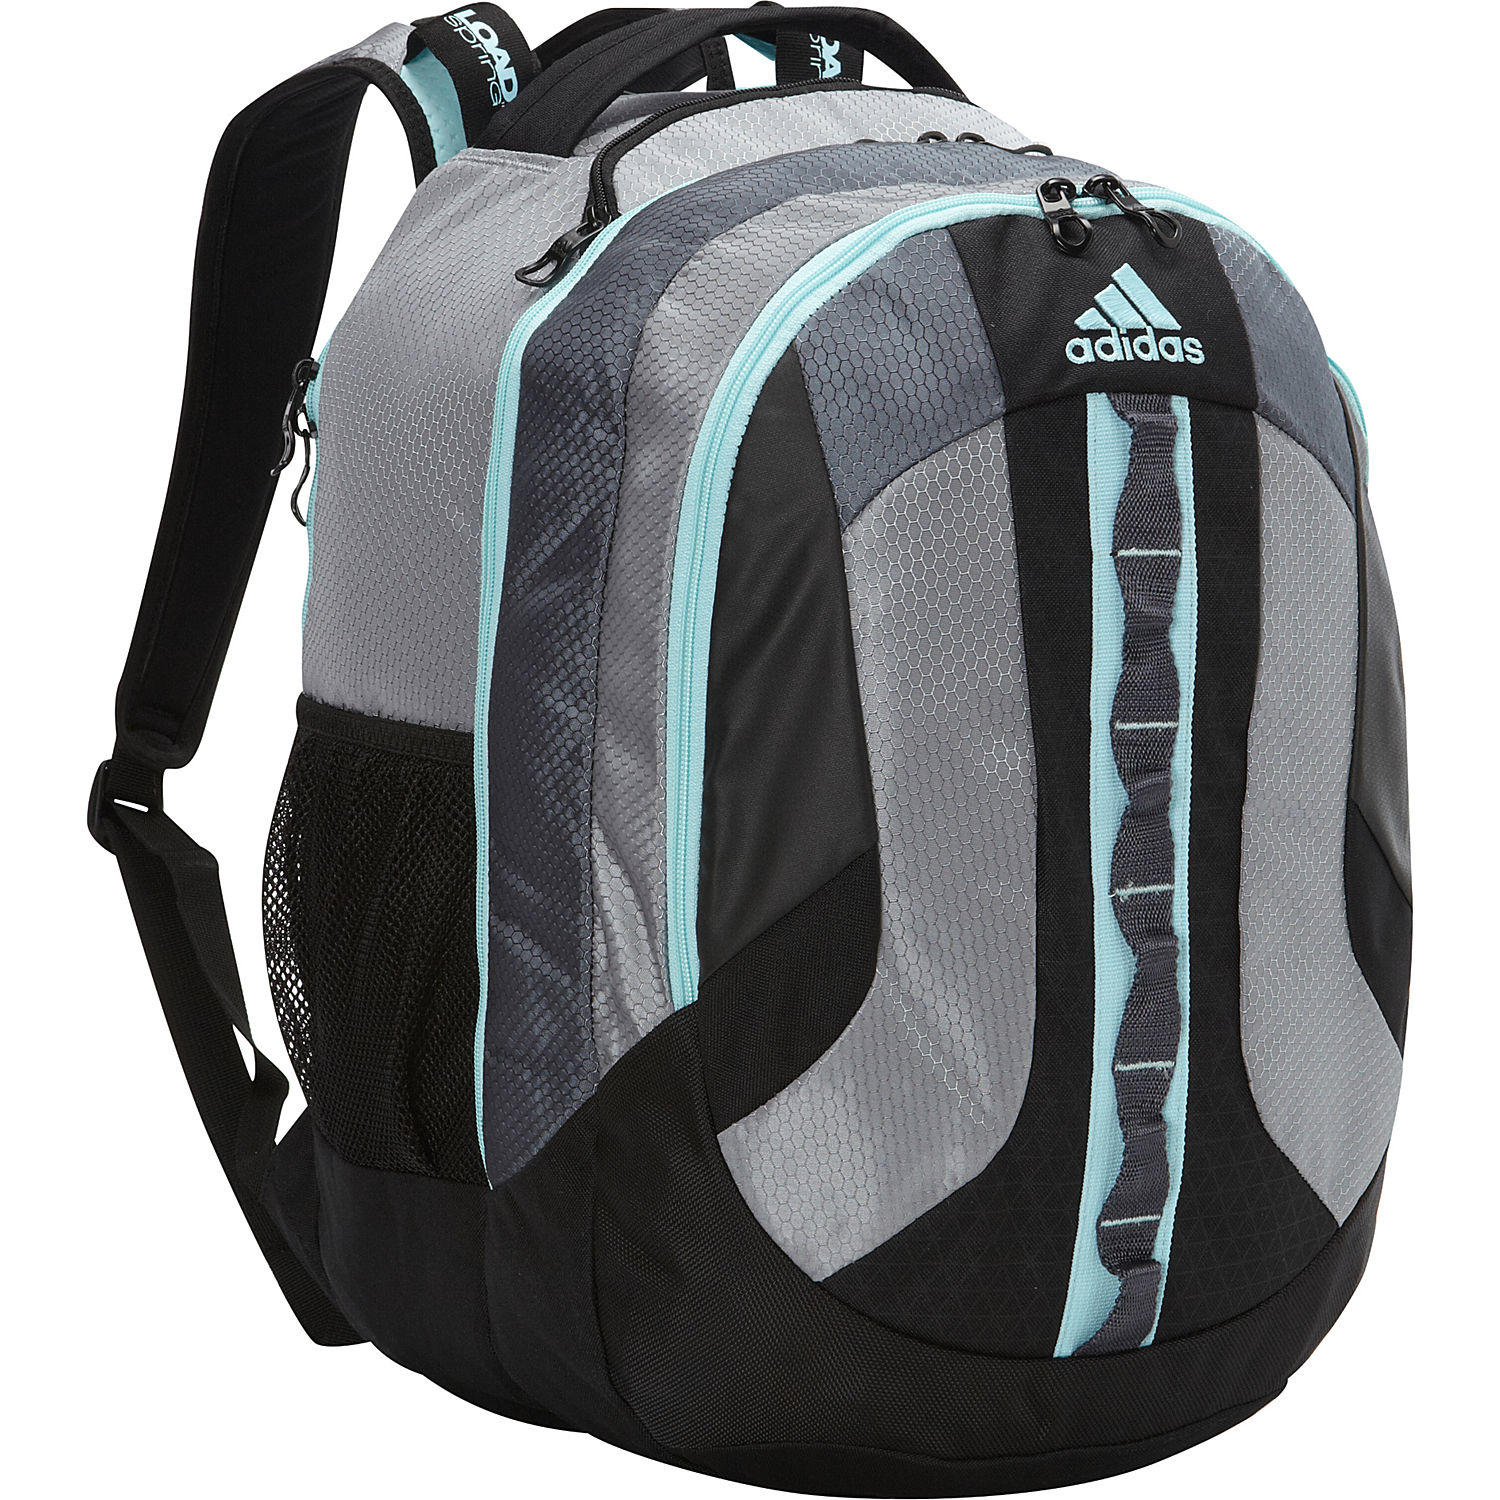 Adidas Prime Backpack Ebags Com From Ebags